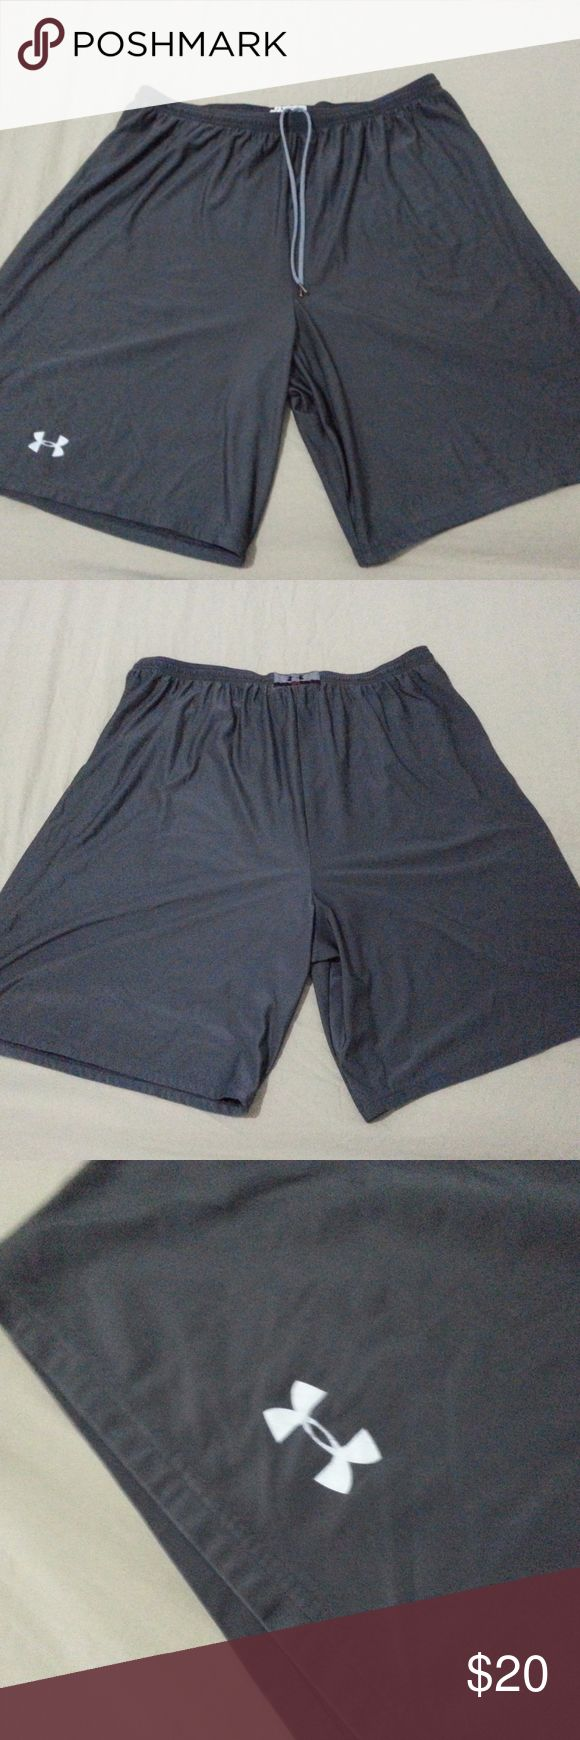 Mens Under Armour Shorts 3XL XXL Gray Athletic Mens Under Armour Shorts 3XL XXL Gray Athletic  Hi! Welcome to my store! Up for sale is a pair of Under Armour Shorts. The size is 3XL. If the item does not meet your expectations you can return for a full refund. Please message me if you have any questions. Thanks for looking! Under Armour Shorts Athletic